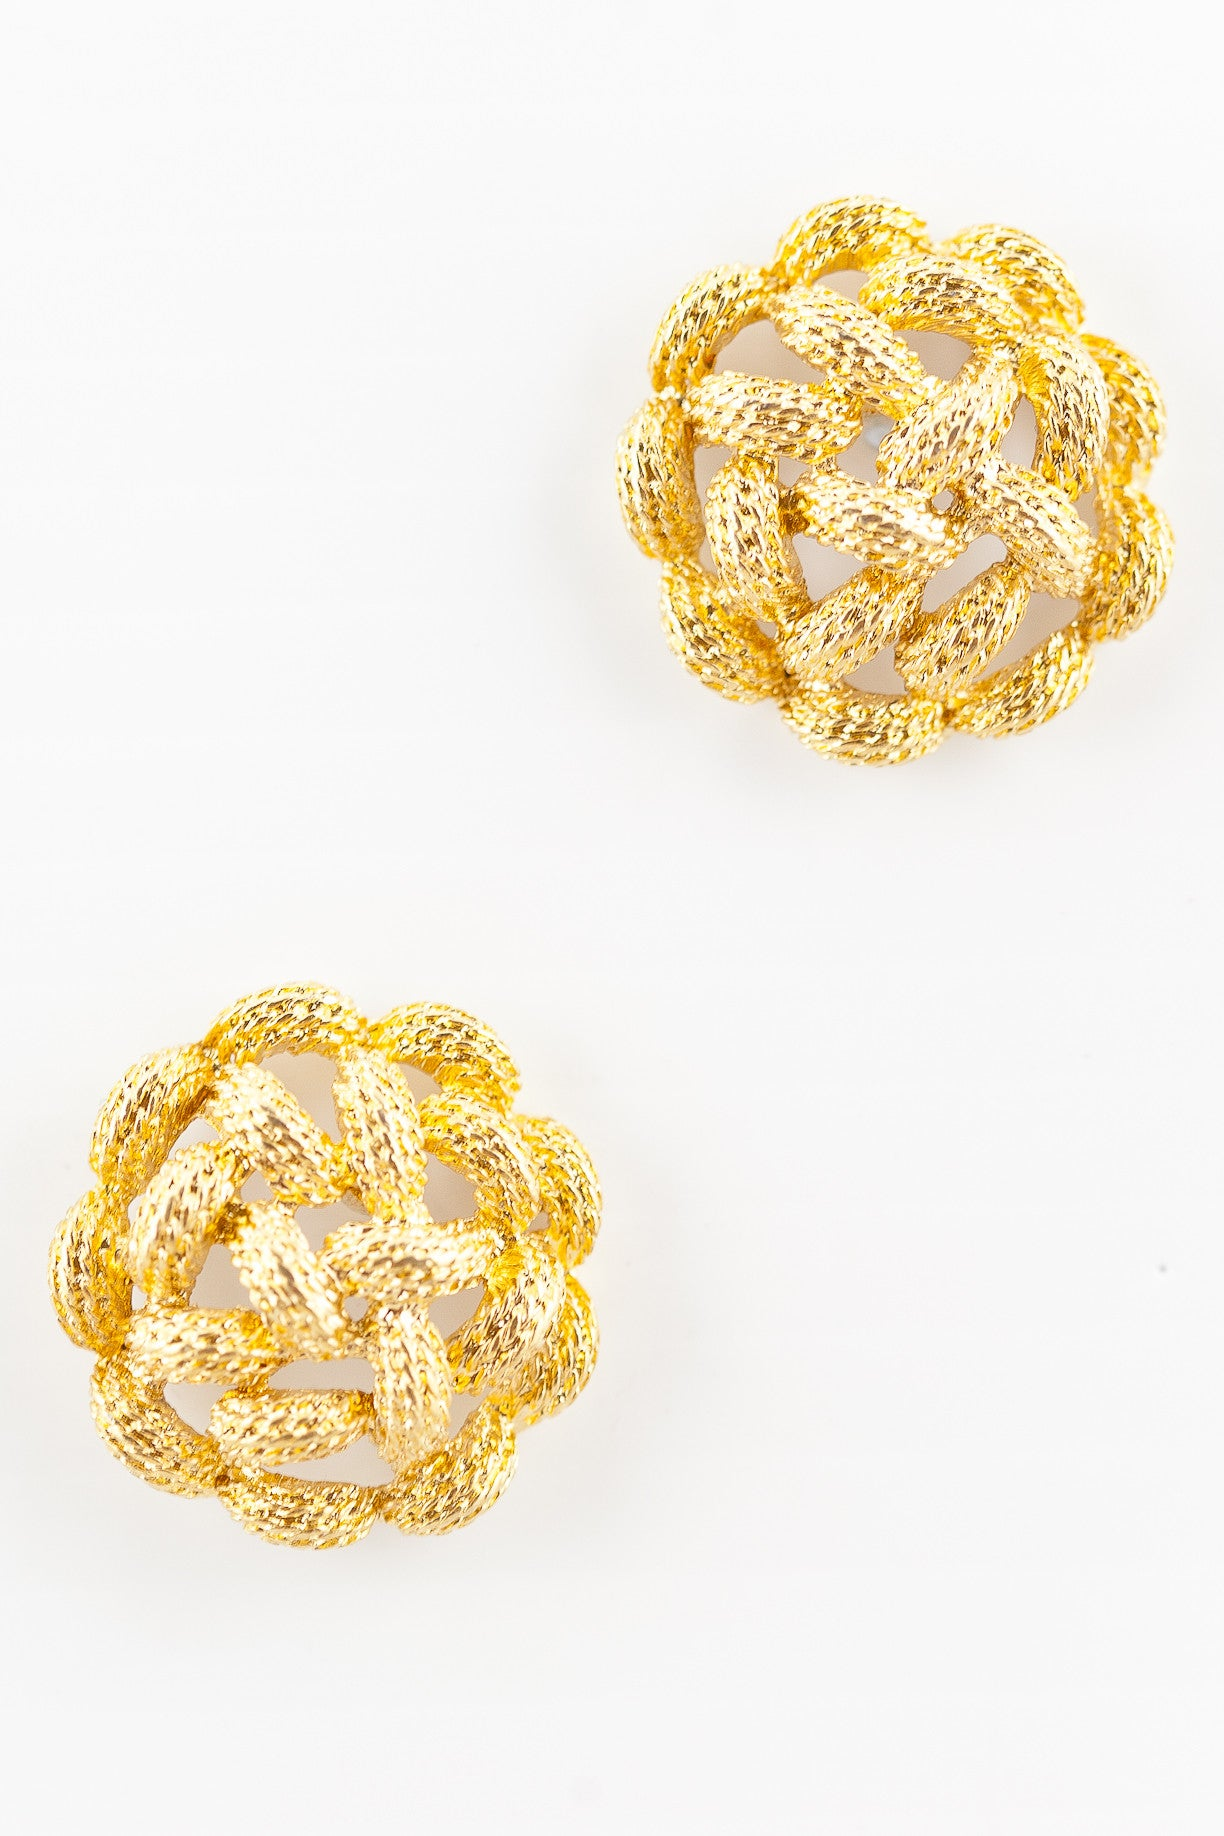 80's__Monet__Woven Knot Earrings